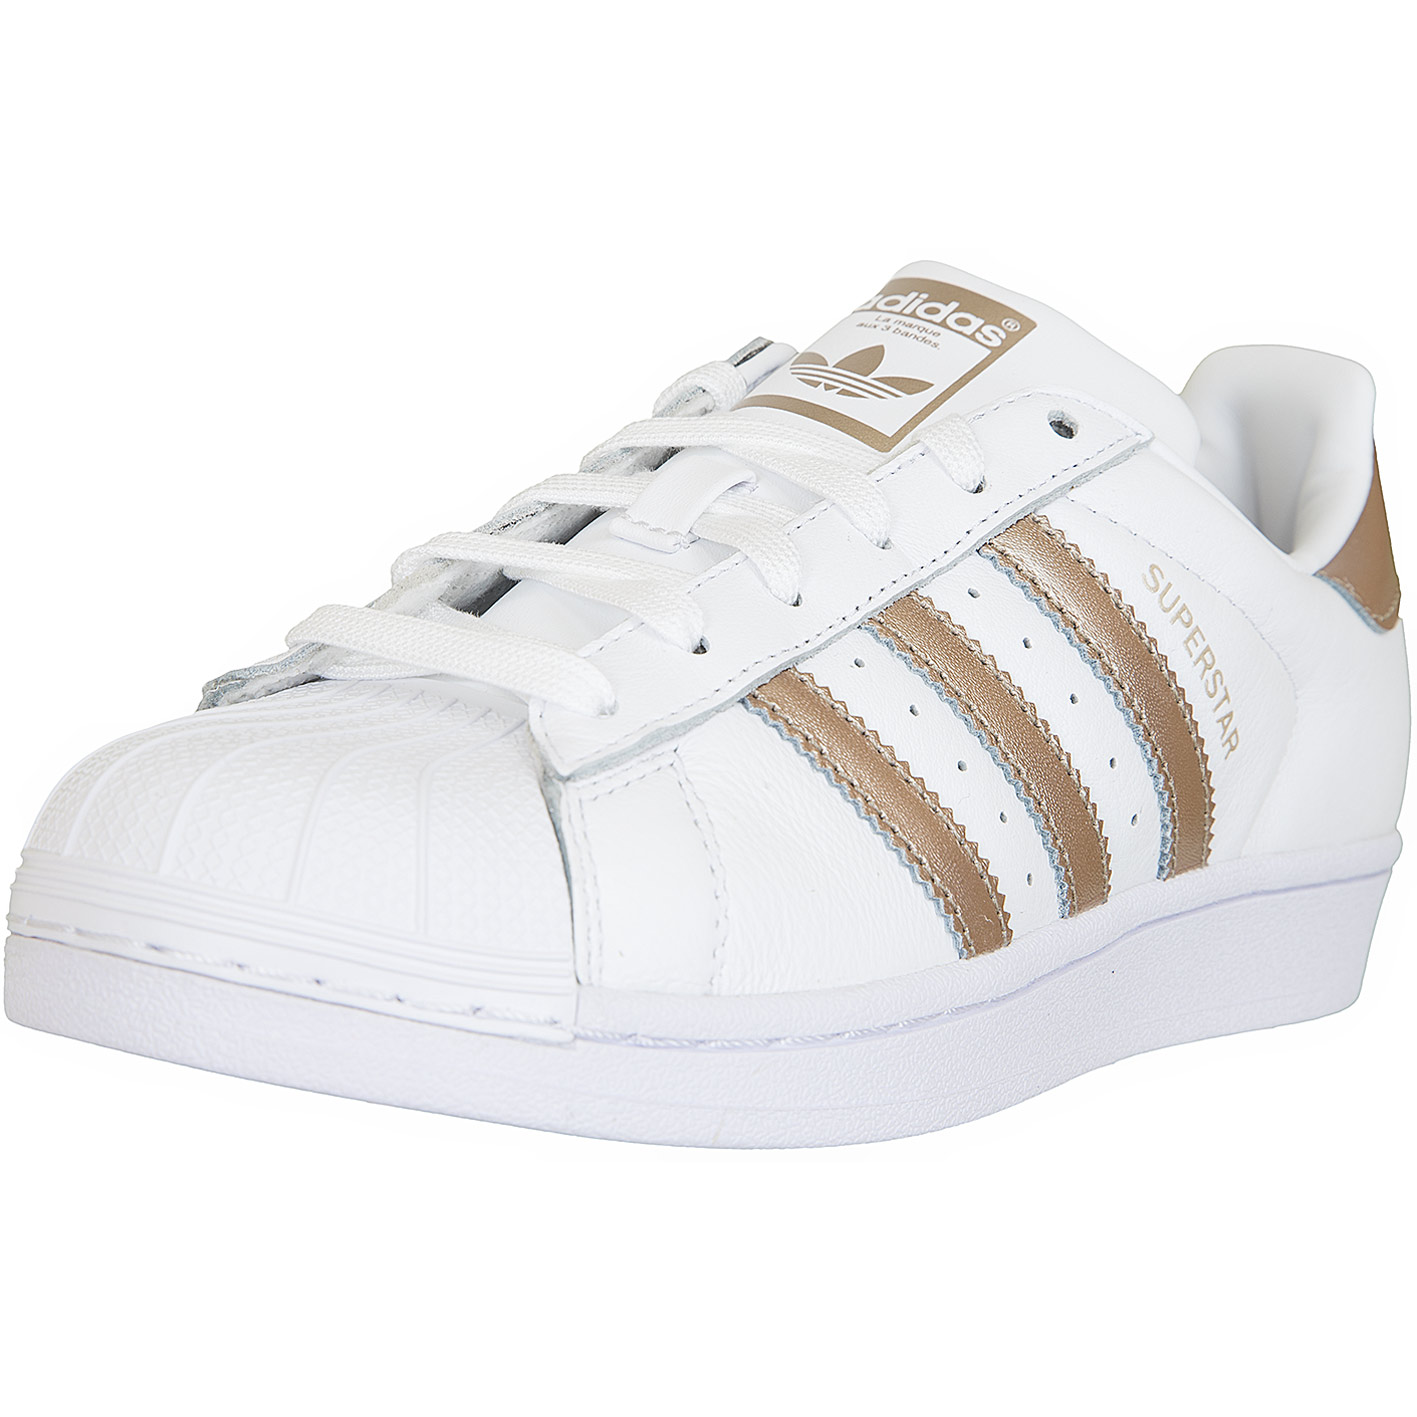 Adidas Originals Damen Sneaker Superstar weiß/gold